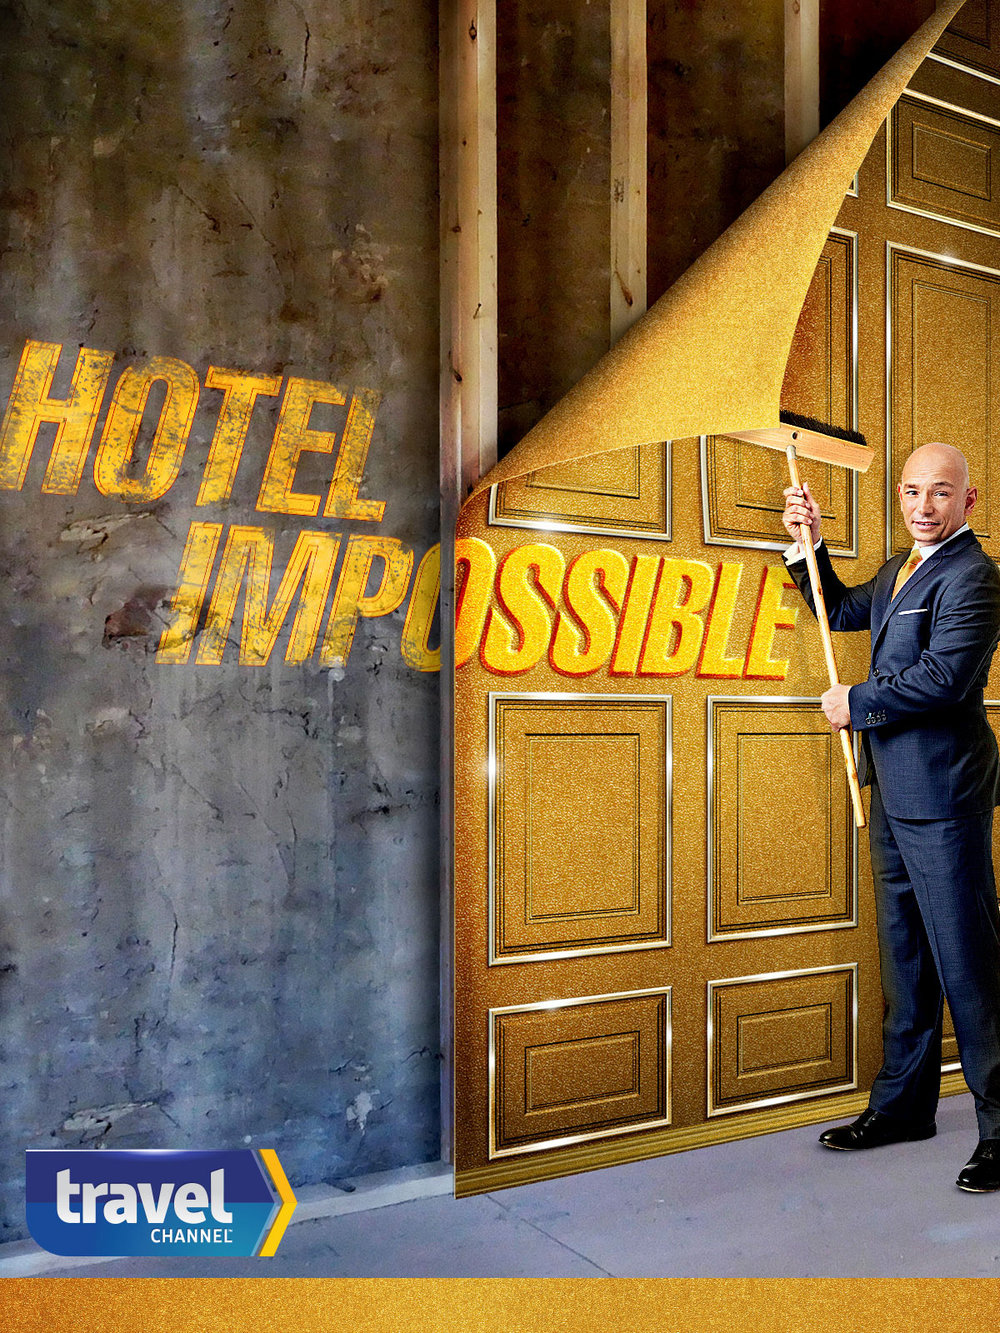 Travel Chanel - Hotel Impossible with Anthony Melchiorri - New York City